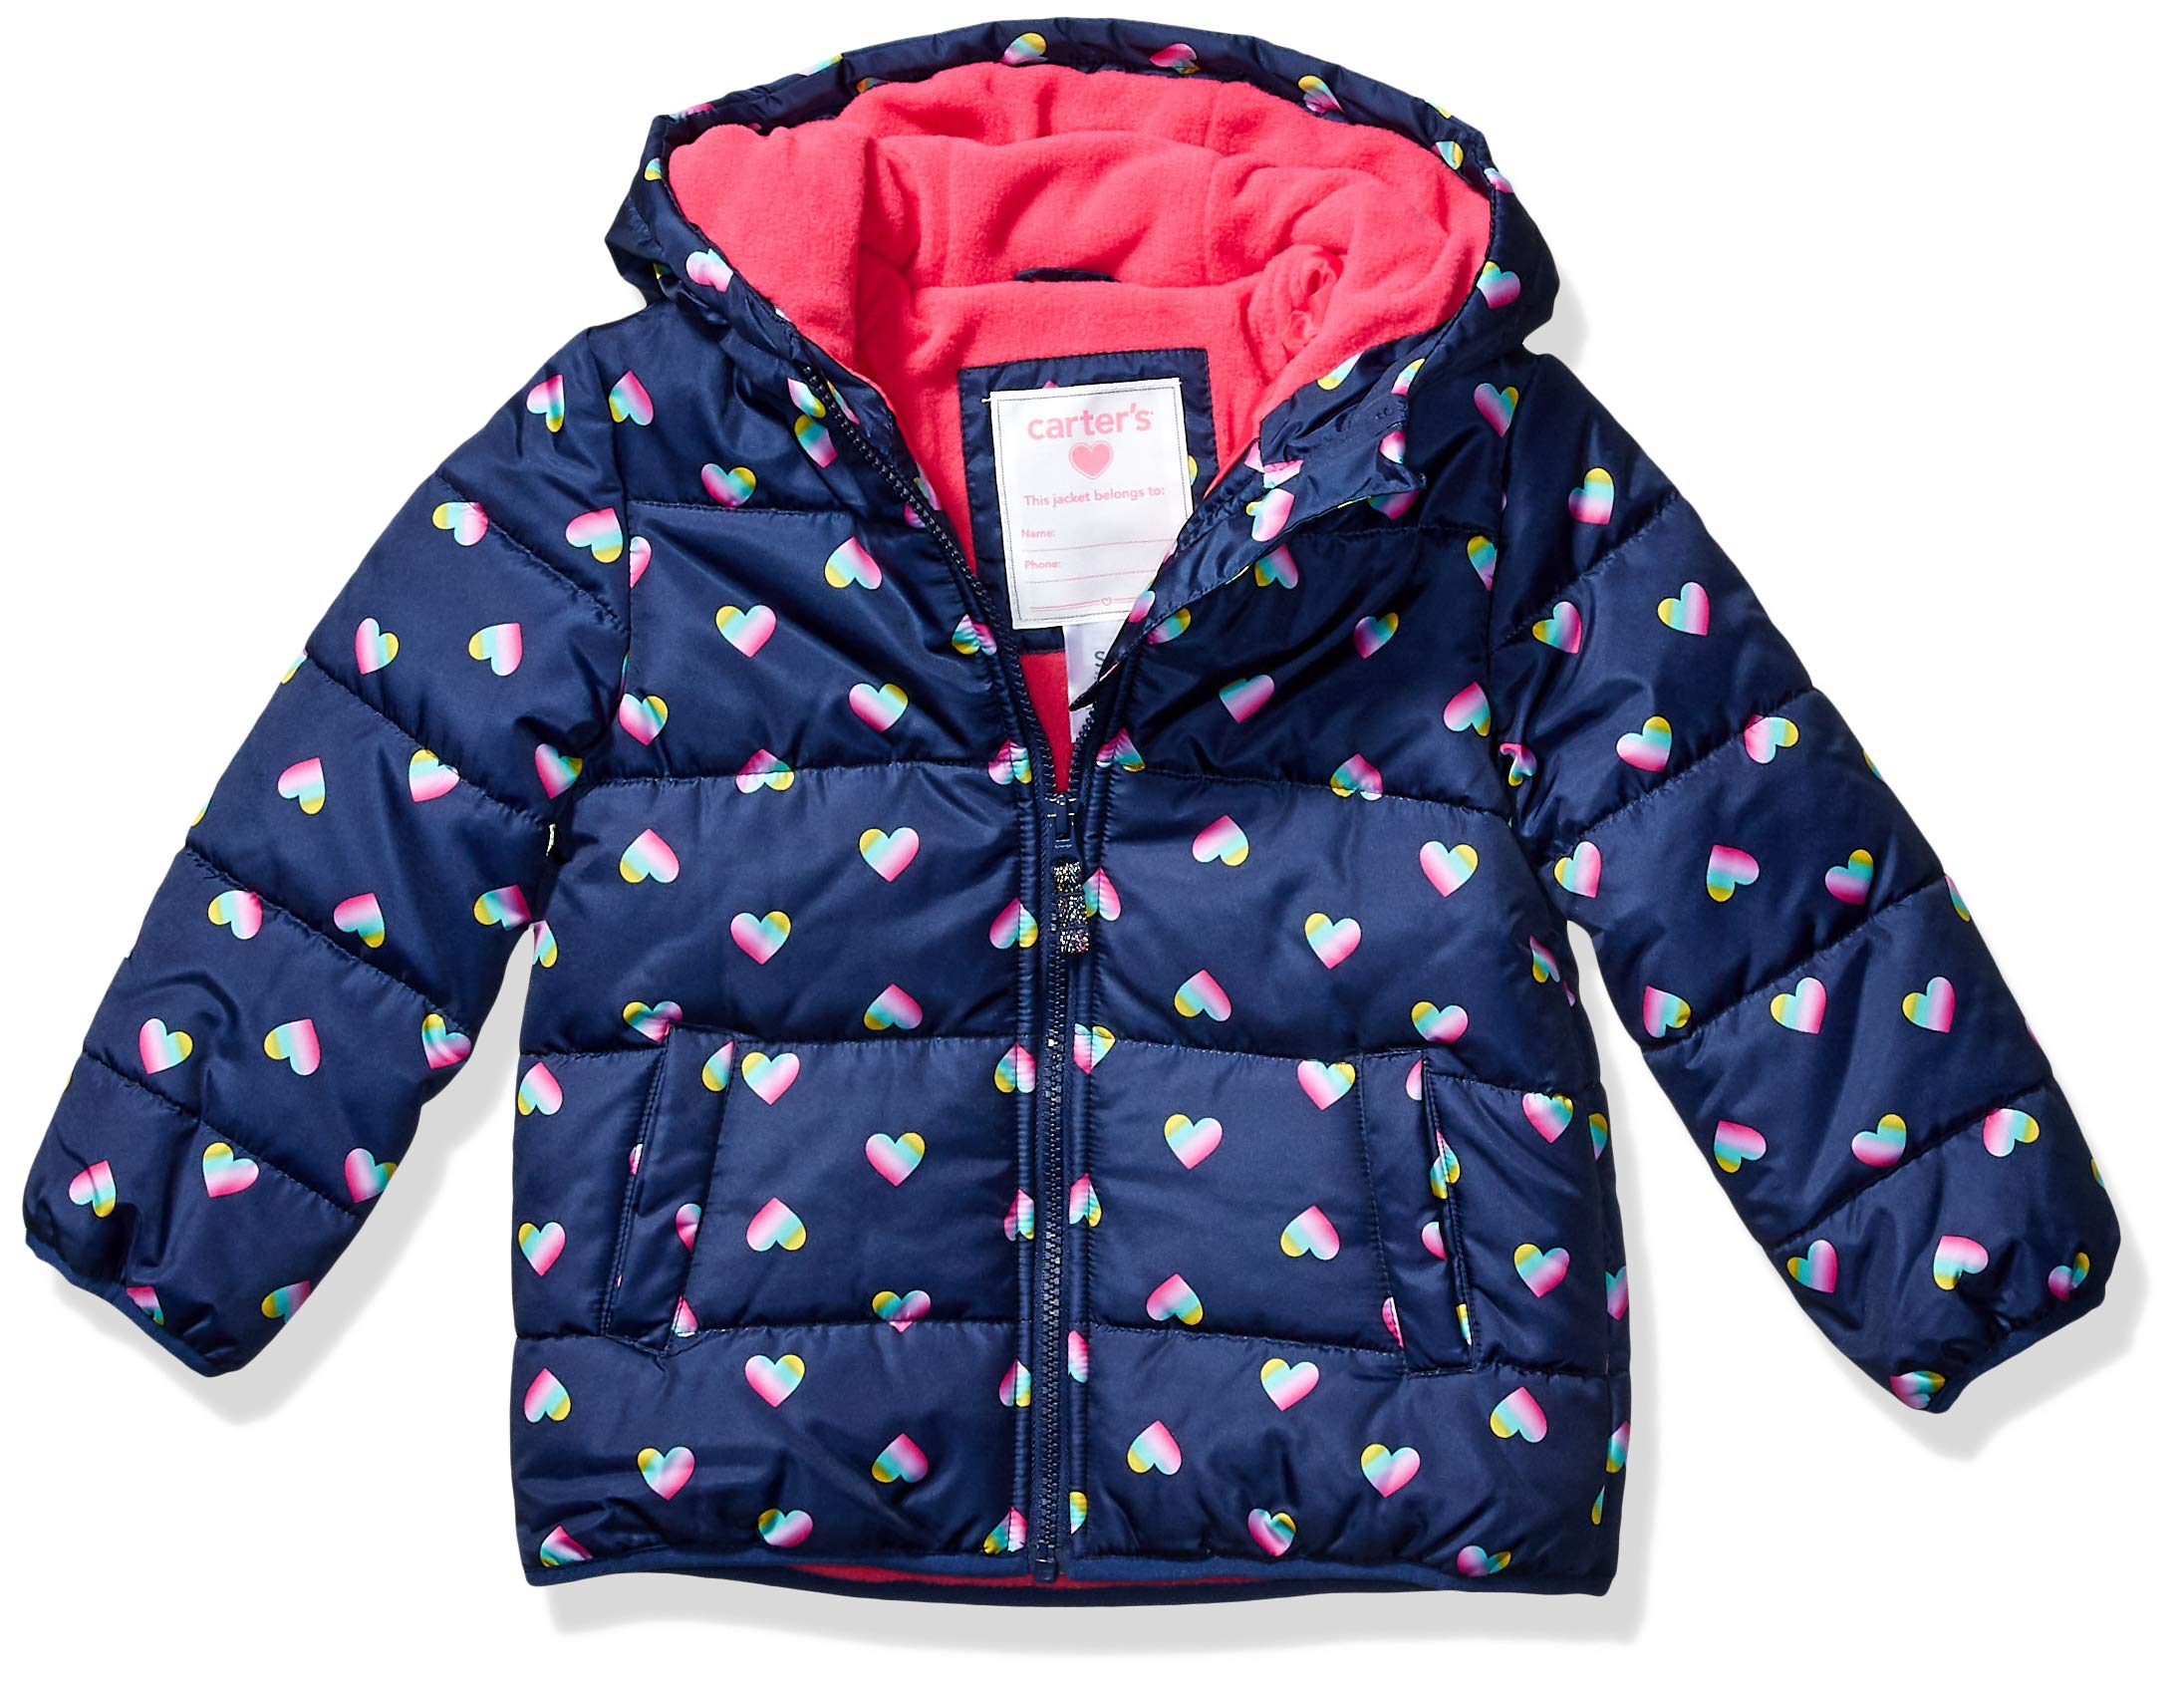 Carter's Girls' Toddler Fleece Lined Puffer Jacket Coat, Hearts on Navy, 3T by Carter's